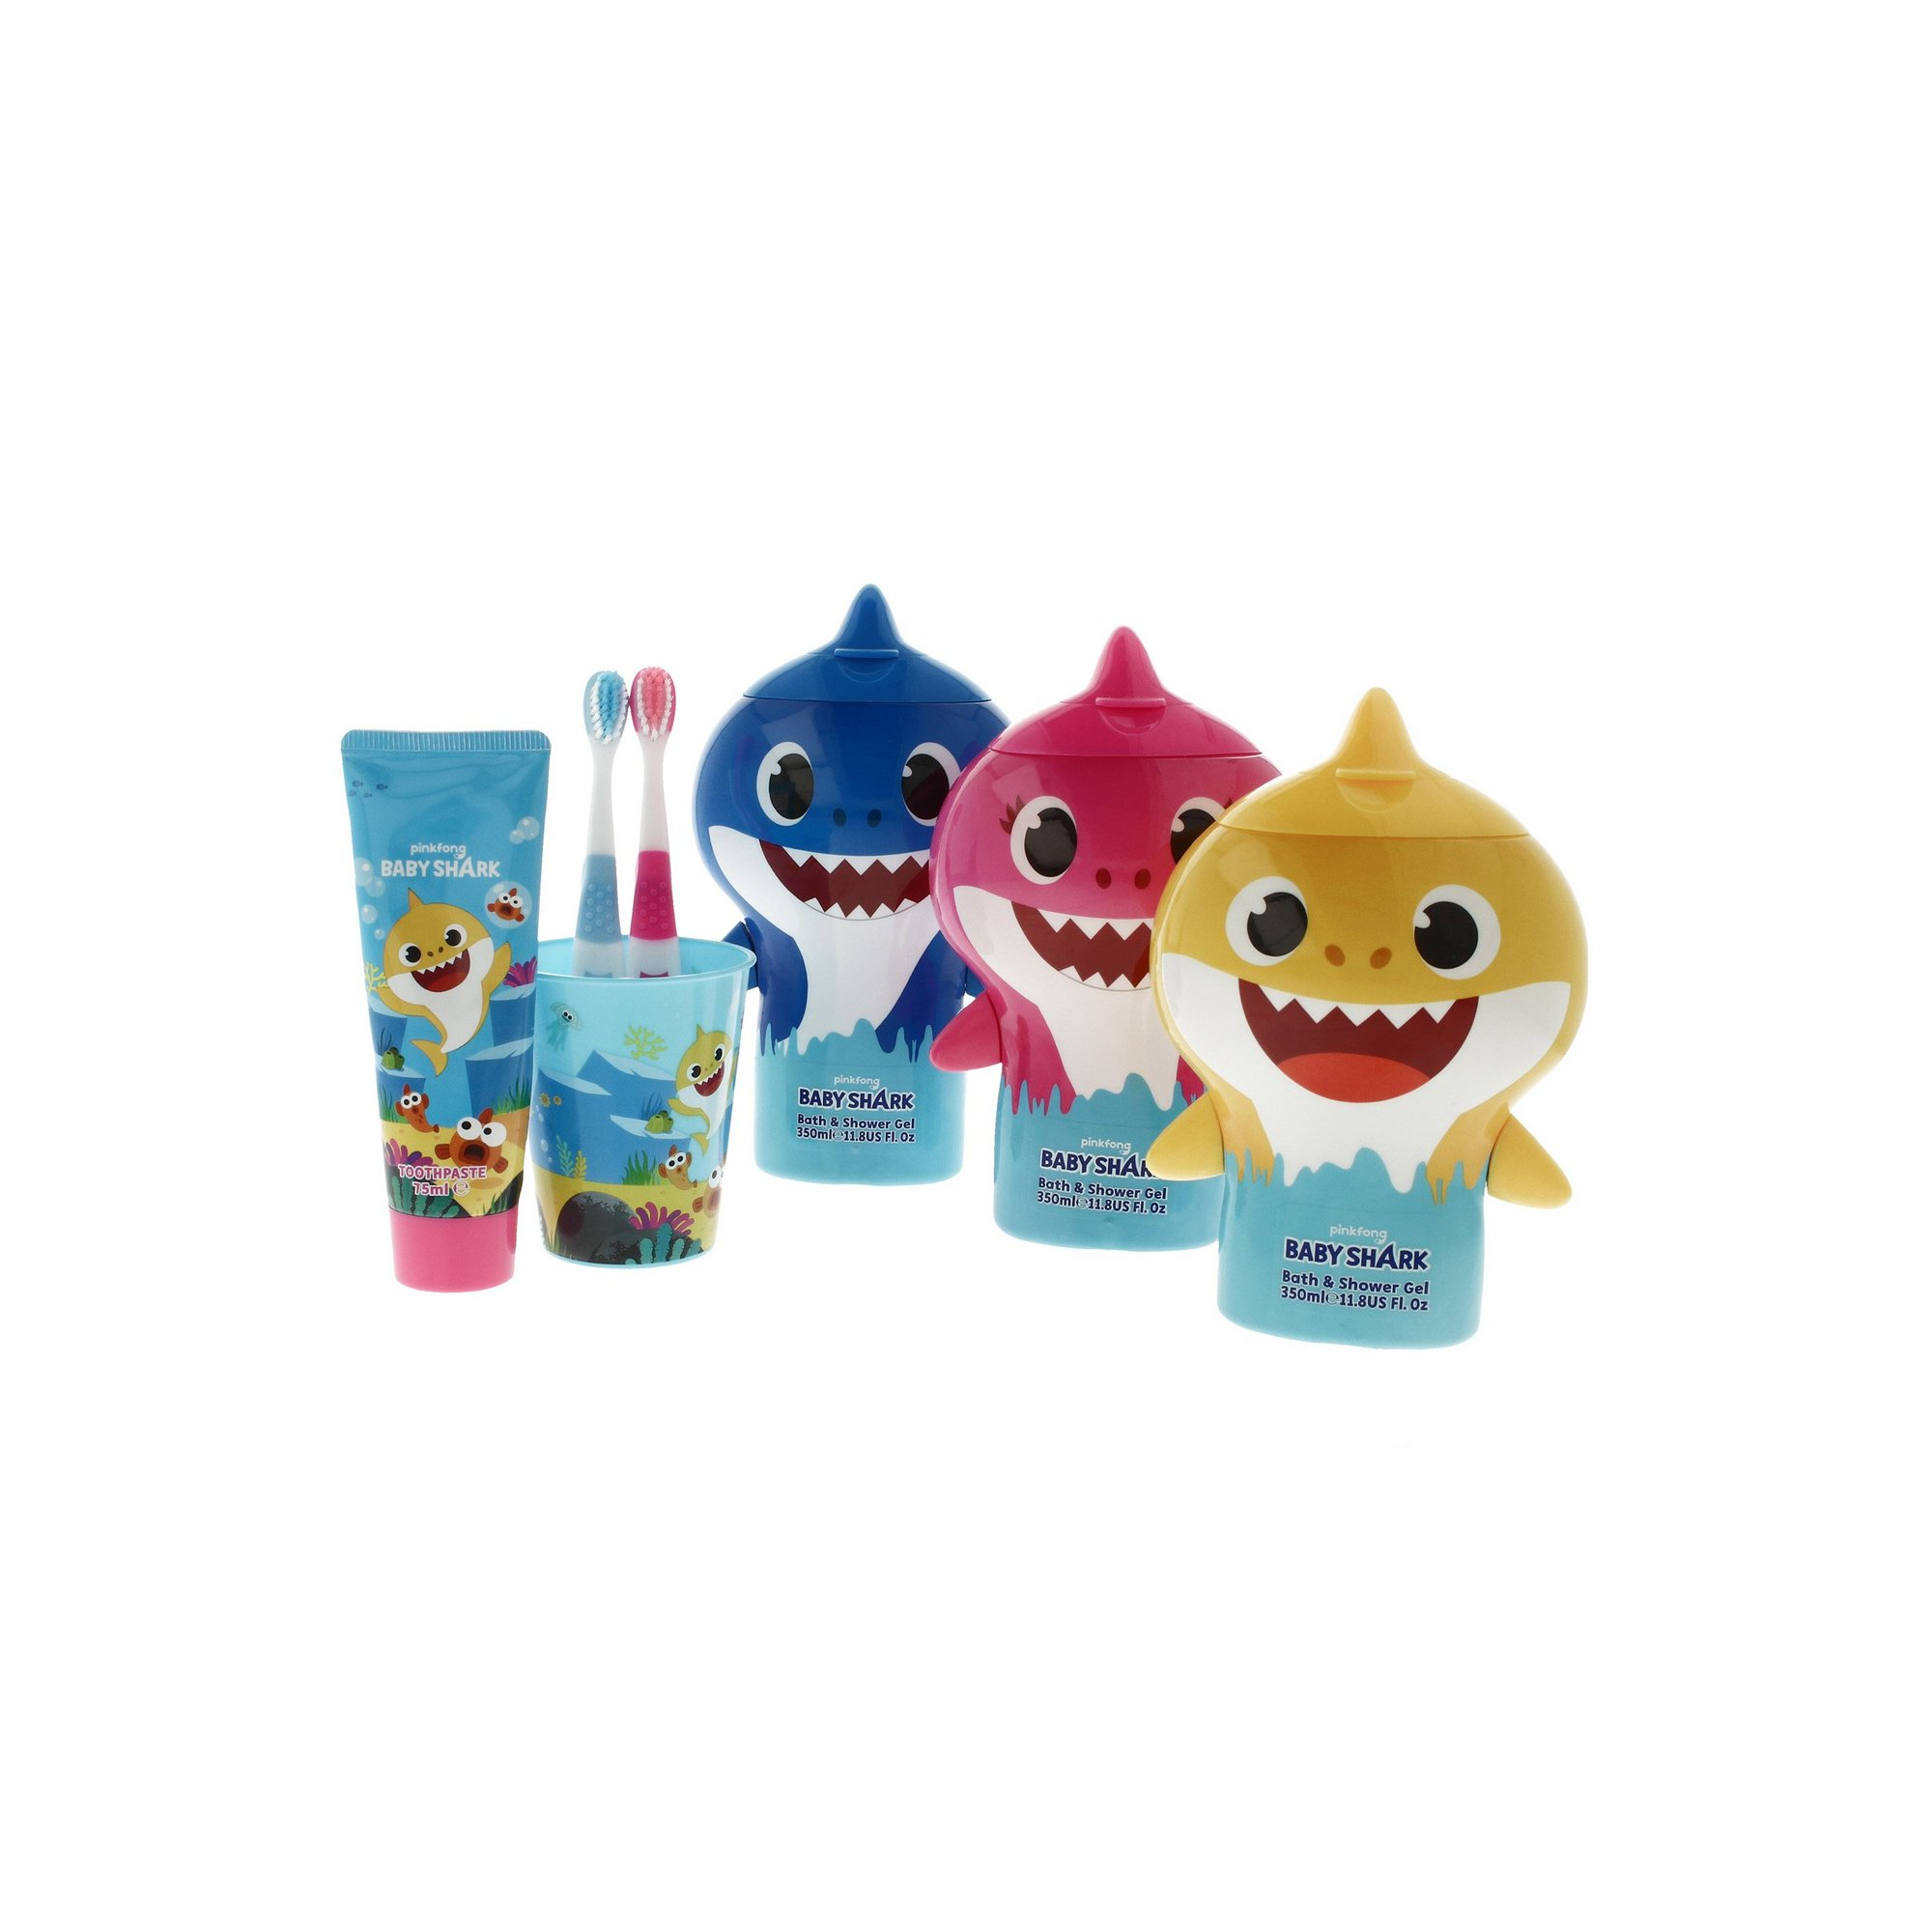 Image of Baby Shark Toothbrush and Shower Gel Pack